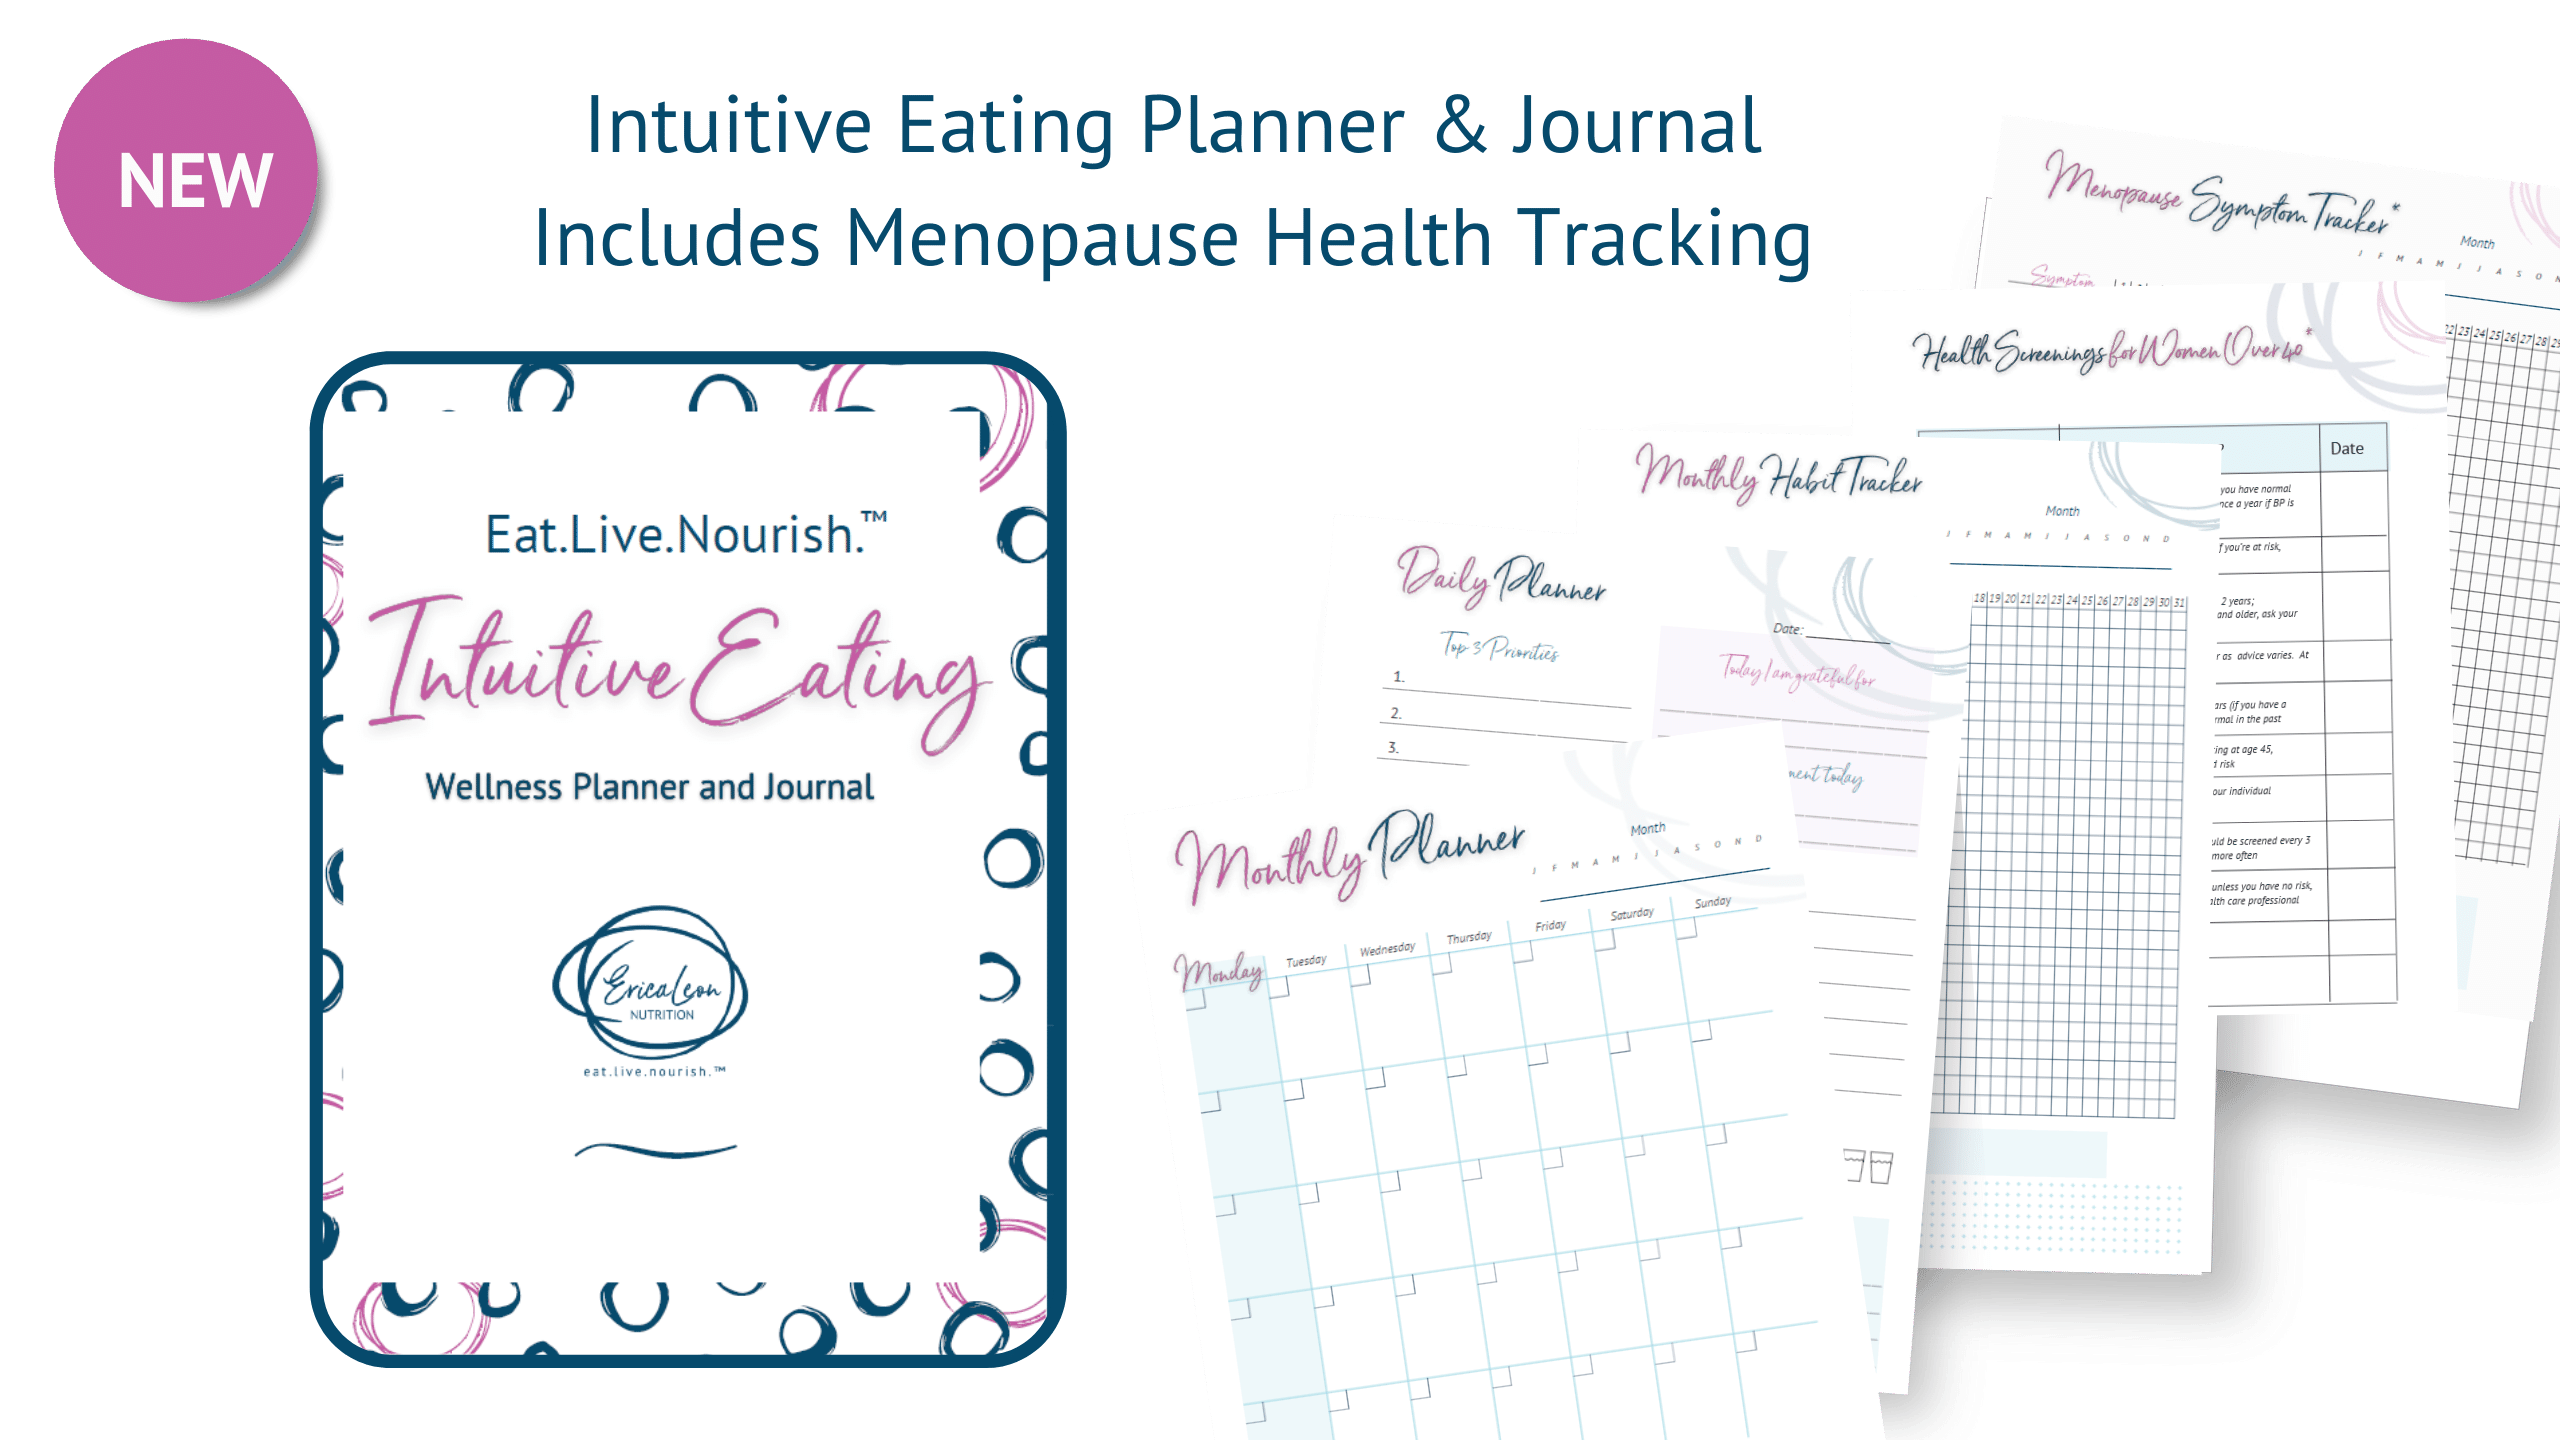 Intuitive Eating Planner and journal for women in midlife menopause